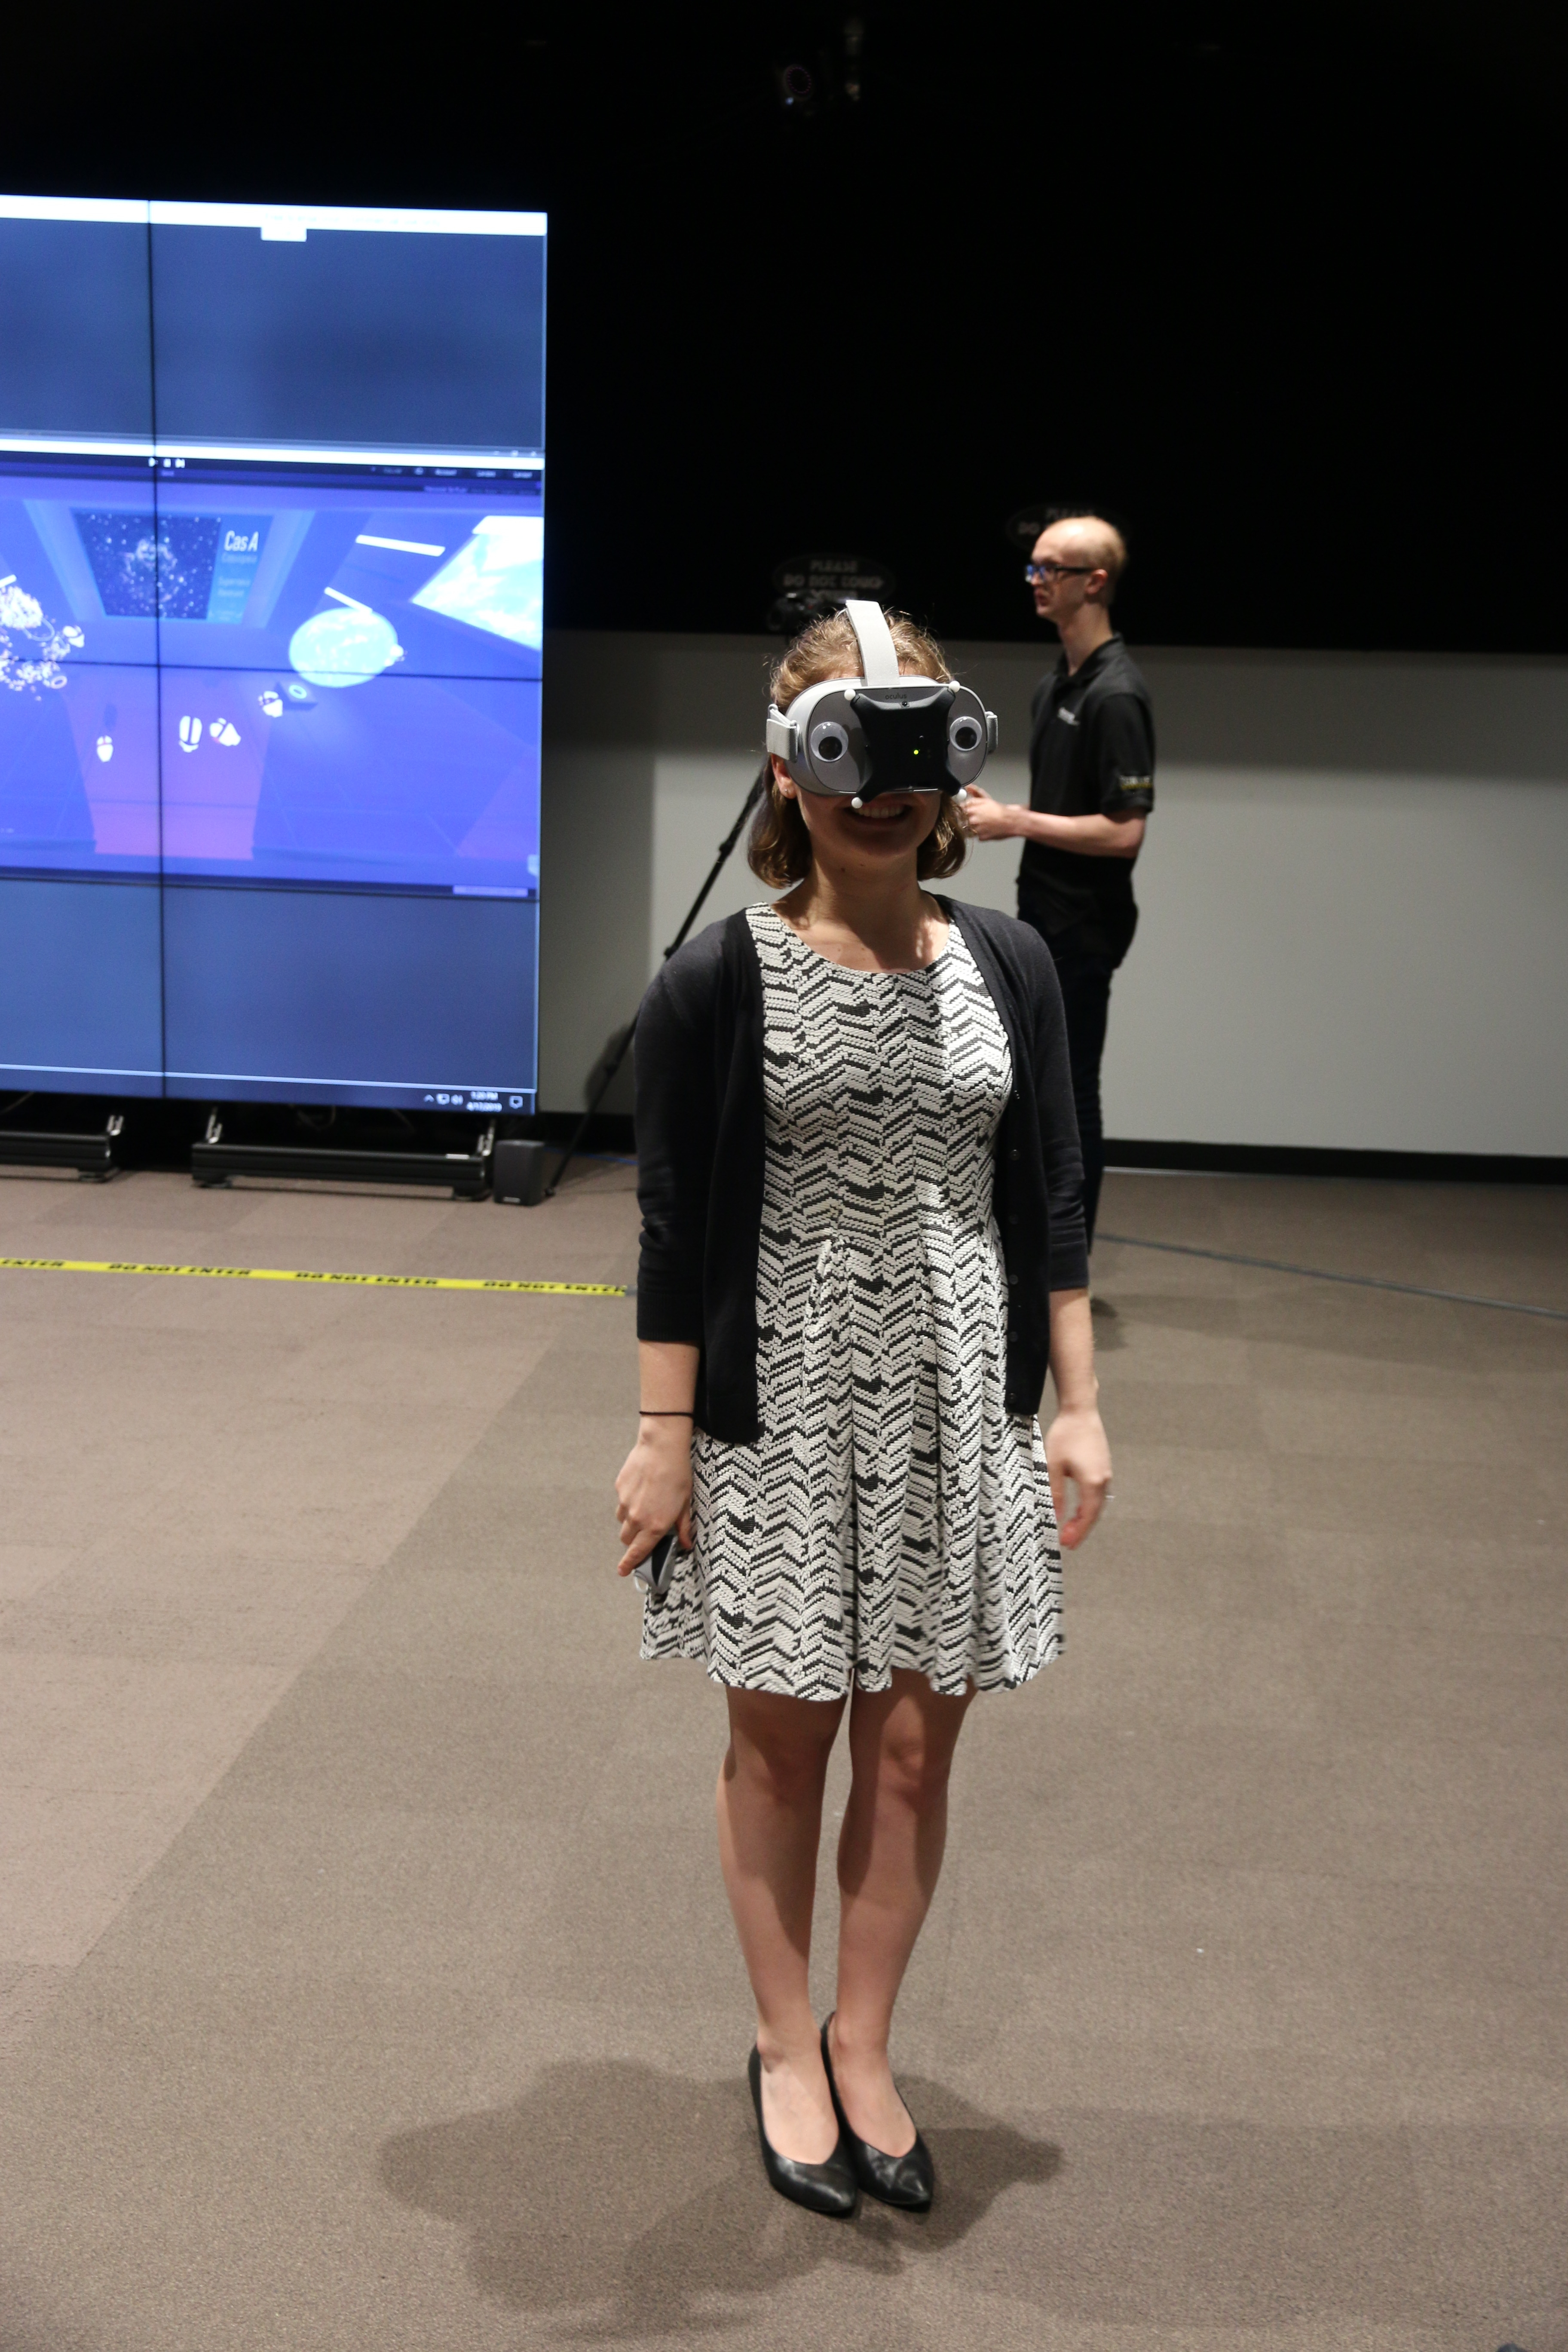 A user trying out the new collaborative virtual reality environment, The Forget